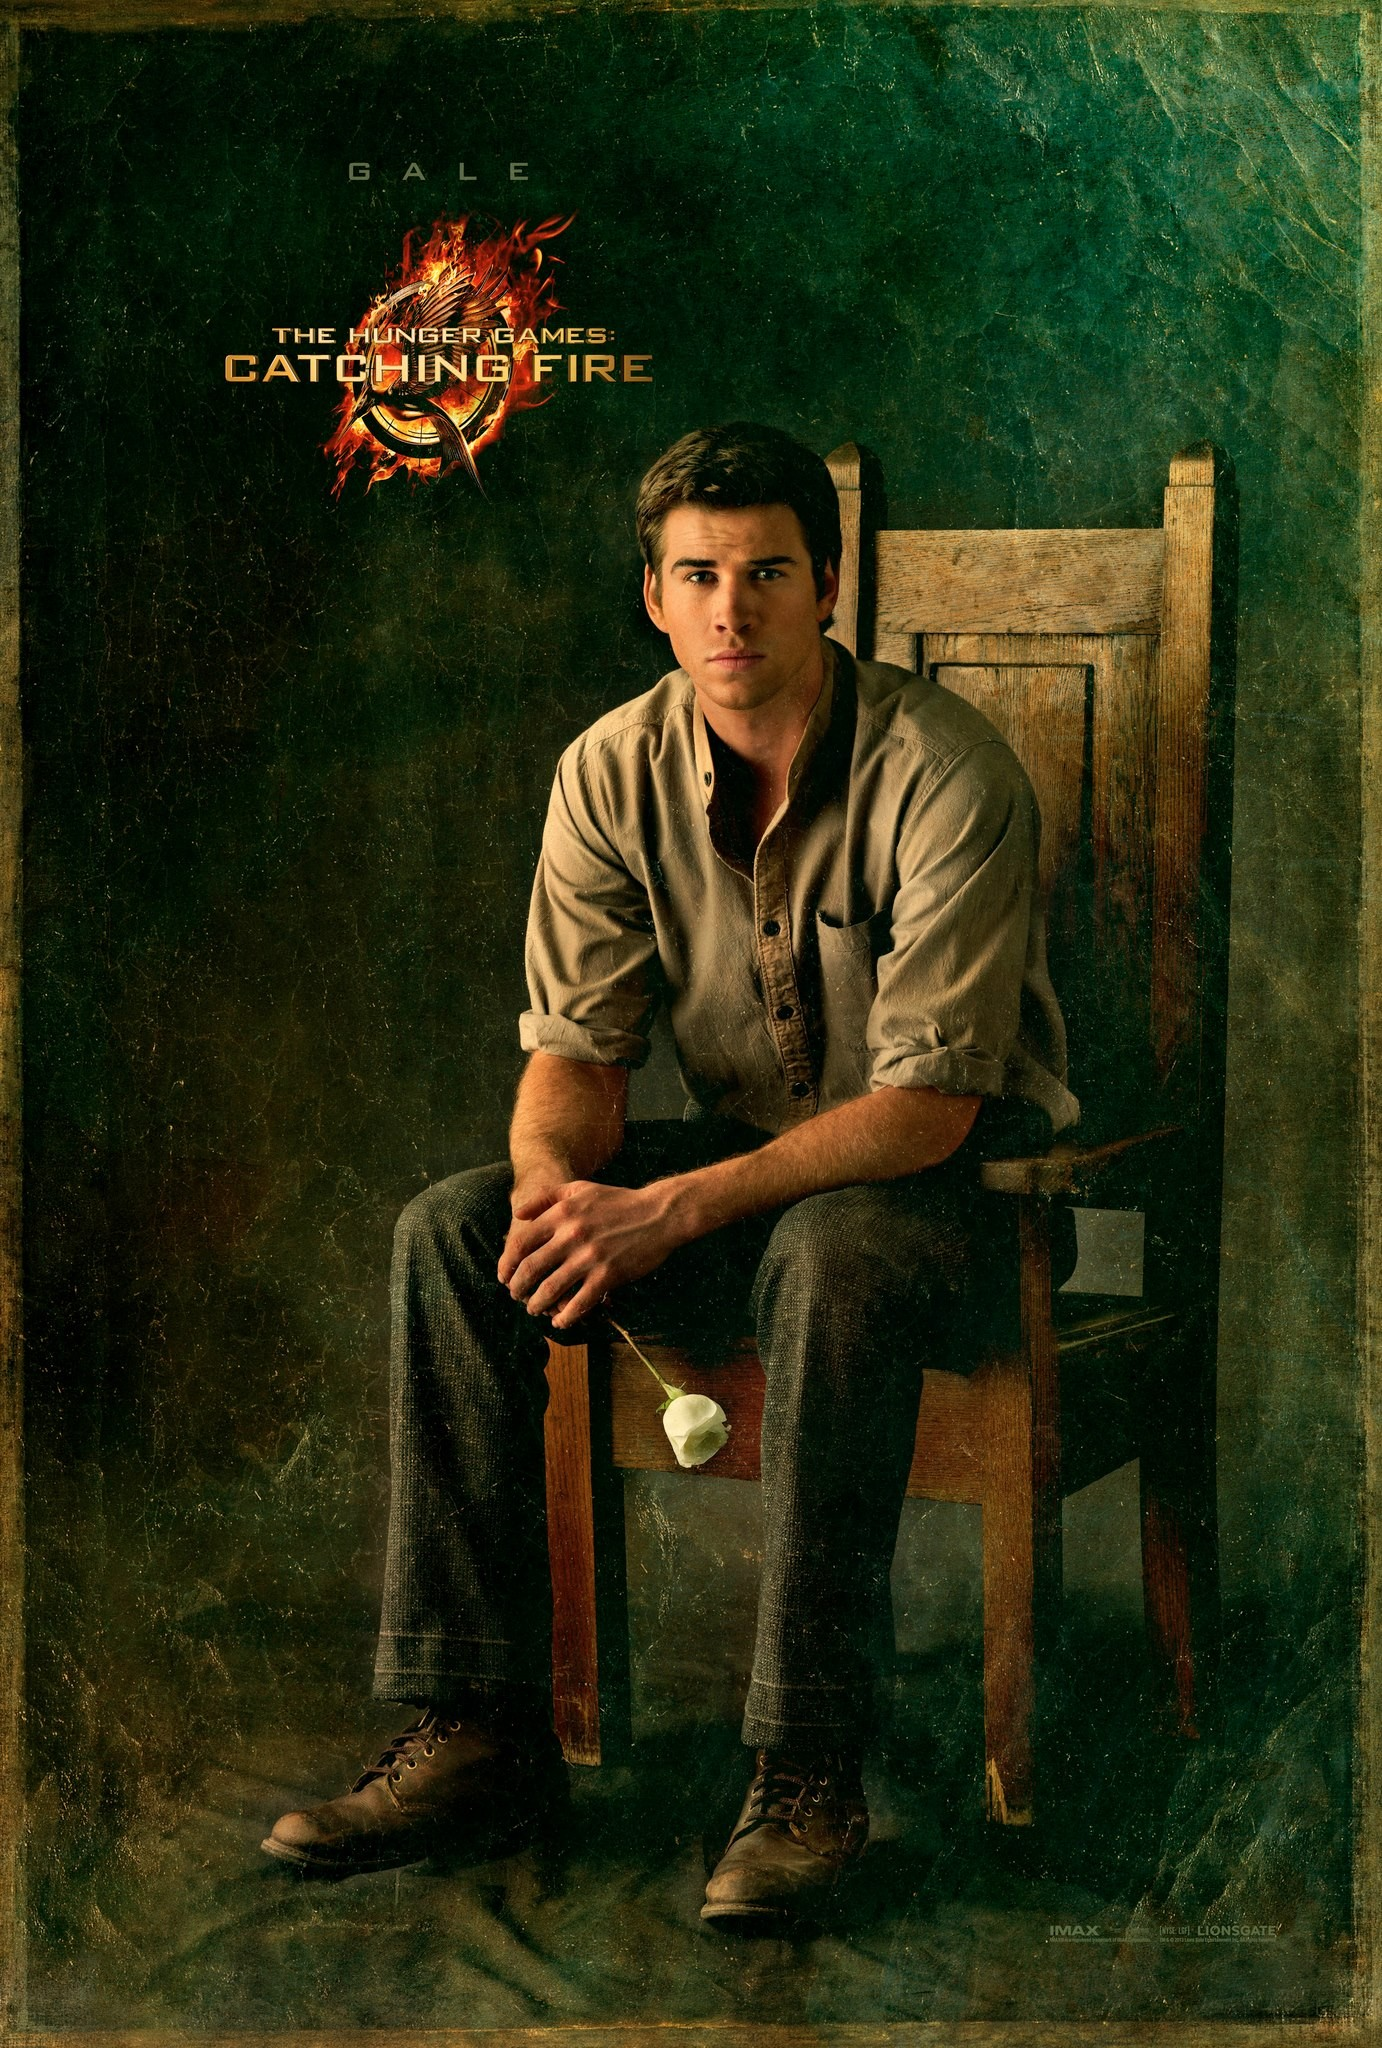 The Hunger Games Catching Fire - Poster - 012 - Gale